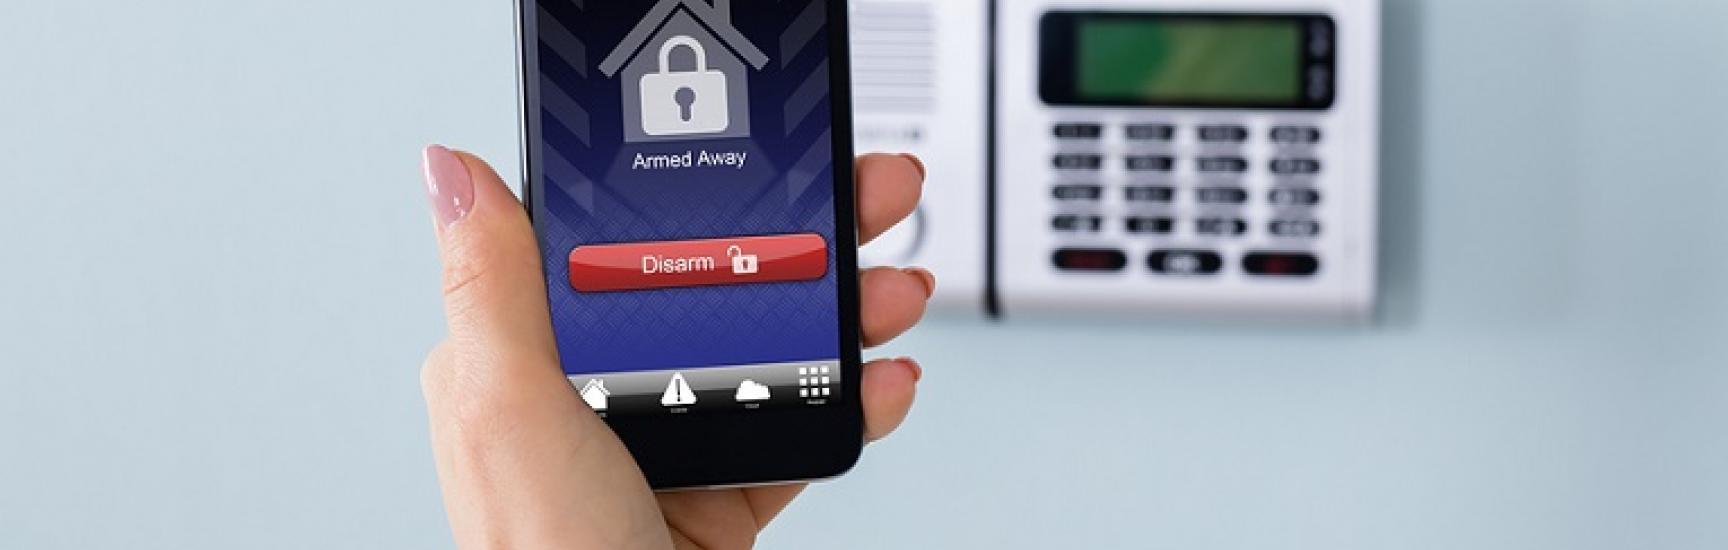 Discount Home Insurance a Value-Add to a Home Security System